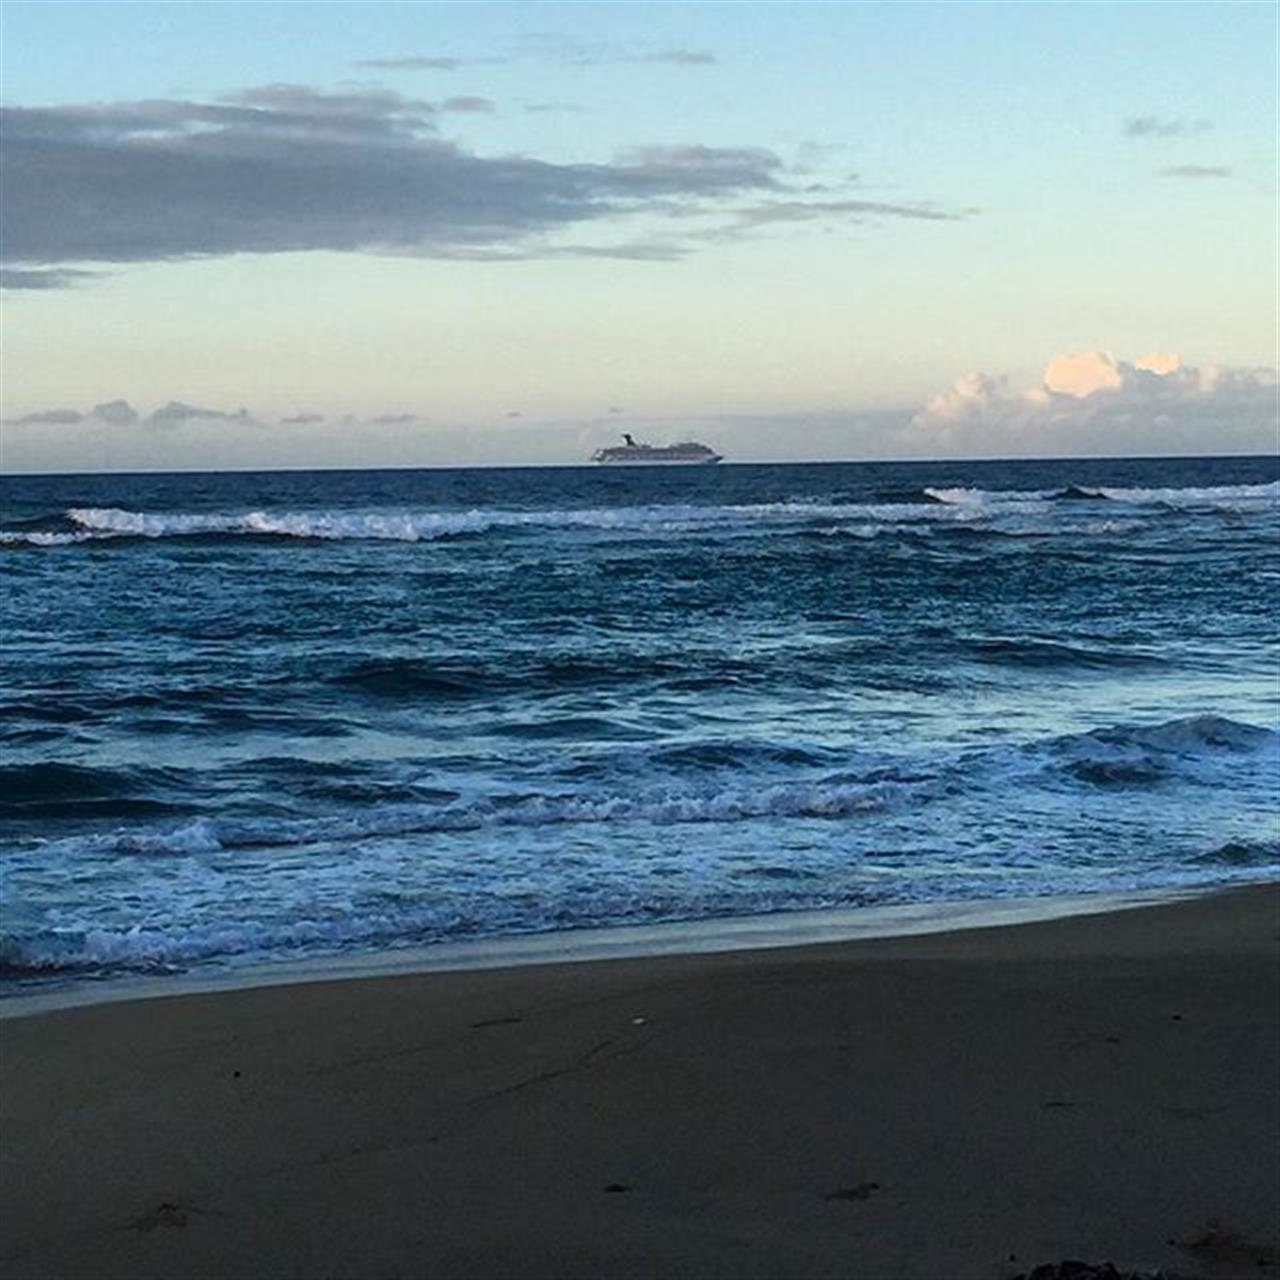 Another cruise ship passing by! #DominicanRepublic #beach #ocean #leadingrelocal #Cabarete